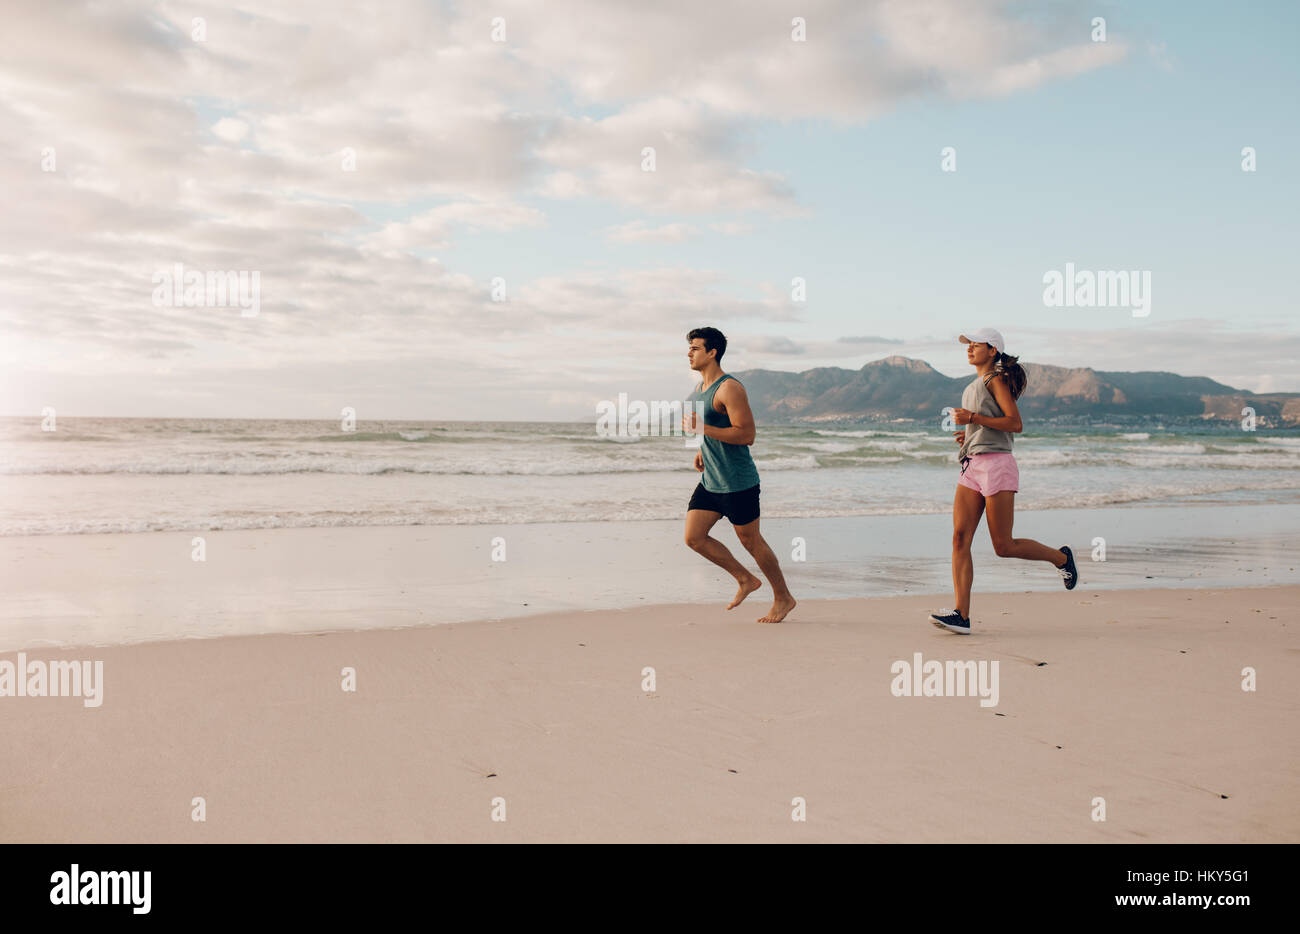 Full length shot of fit young man and woman running on the beach. Couple of runners on the sea shore. - Stock Image